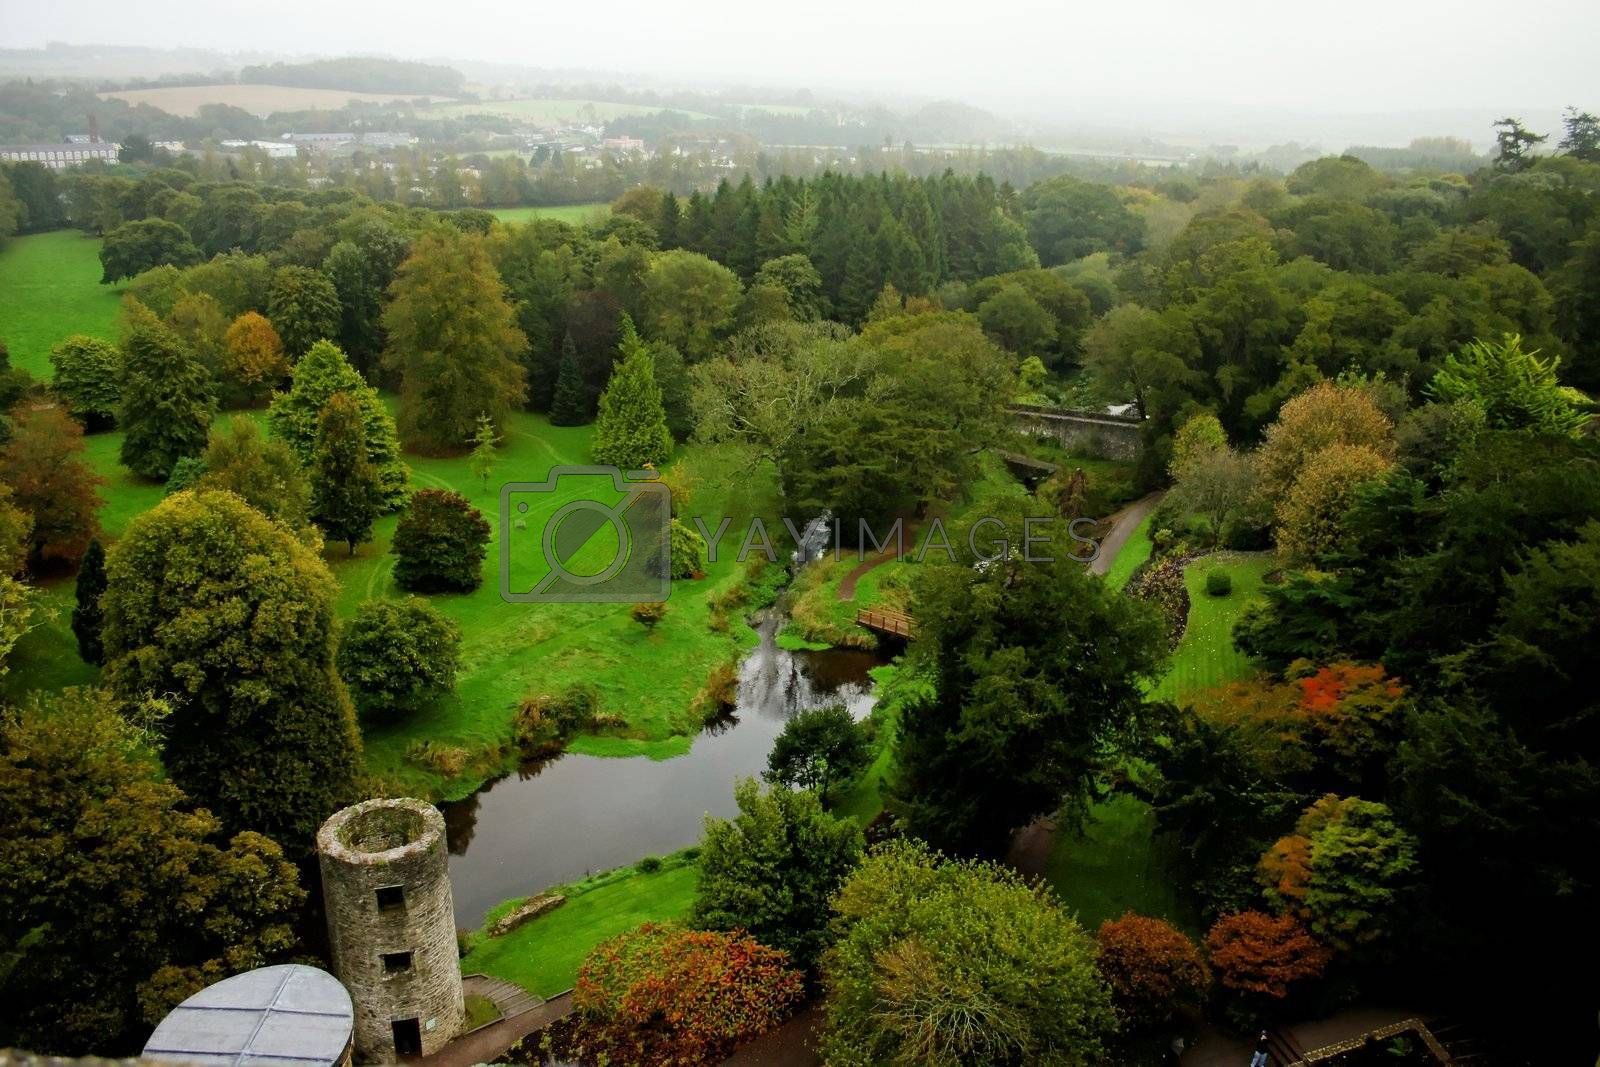 View of garden at Blarney Castle